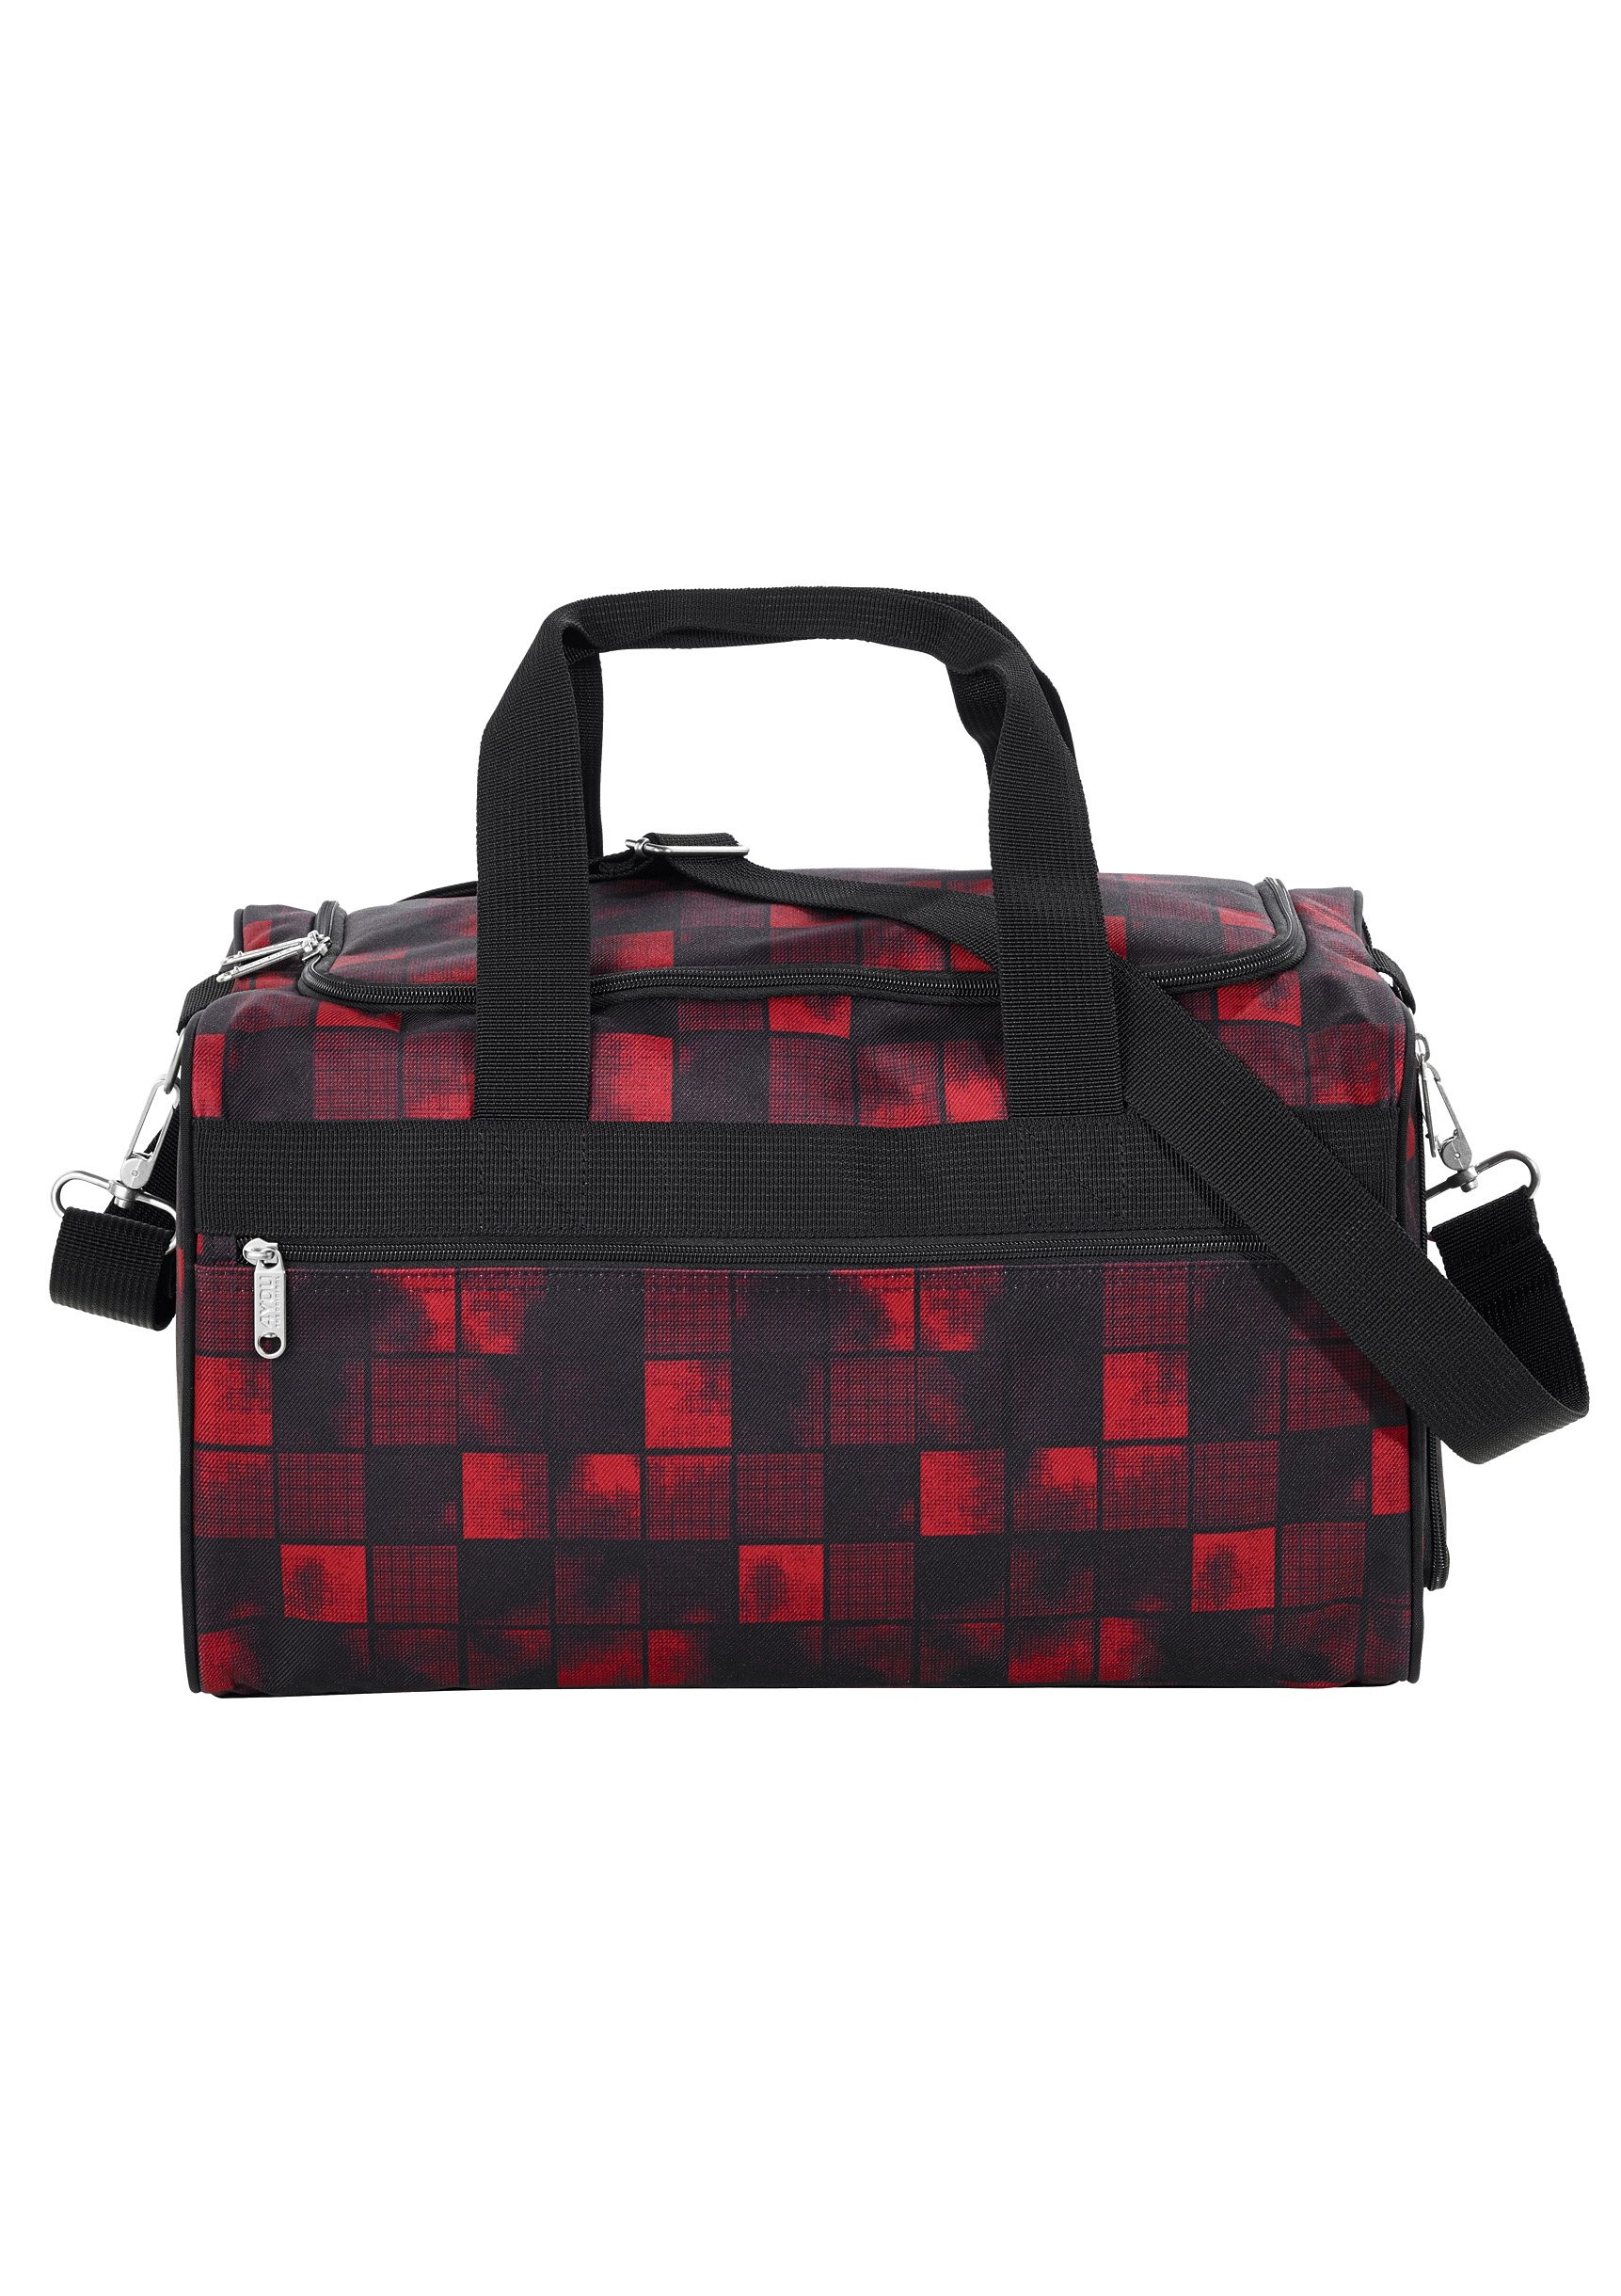 4YOU Sporttasche, Squares Red/Black, »Sportbag M«